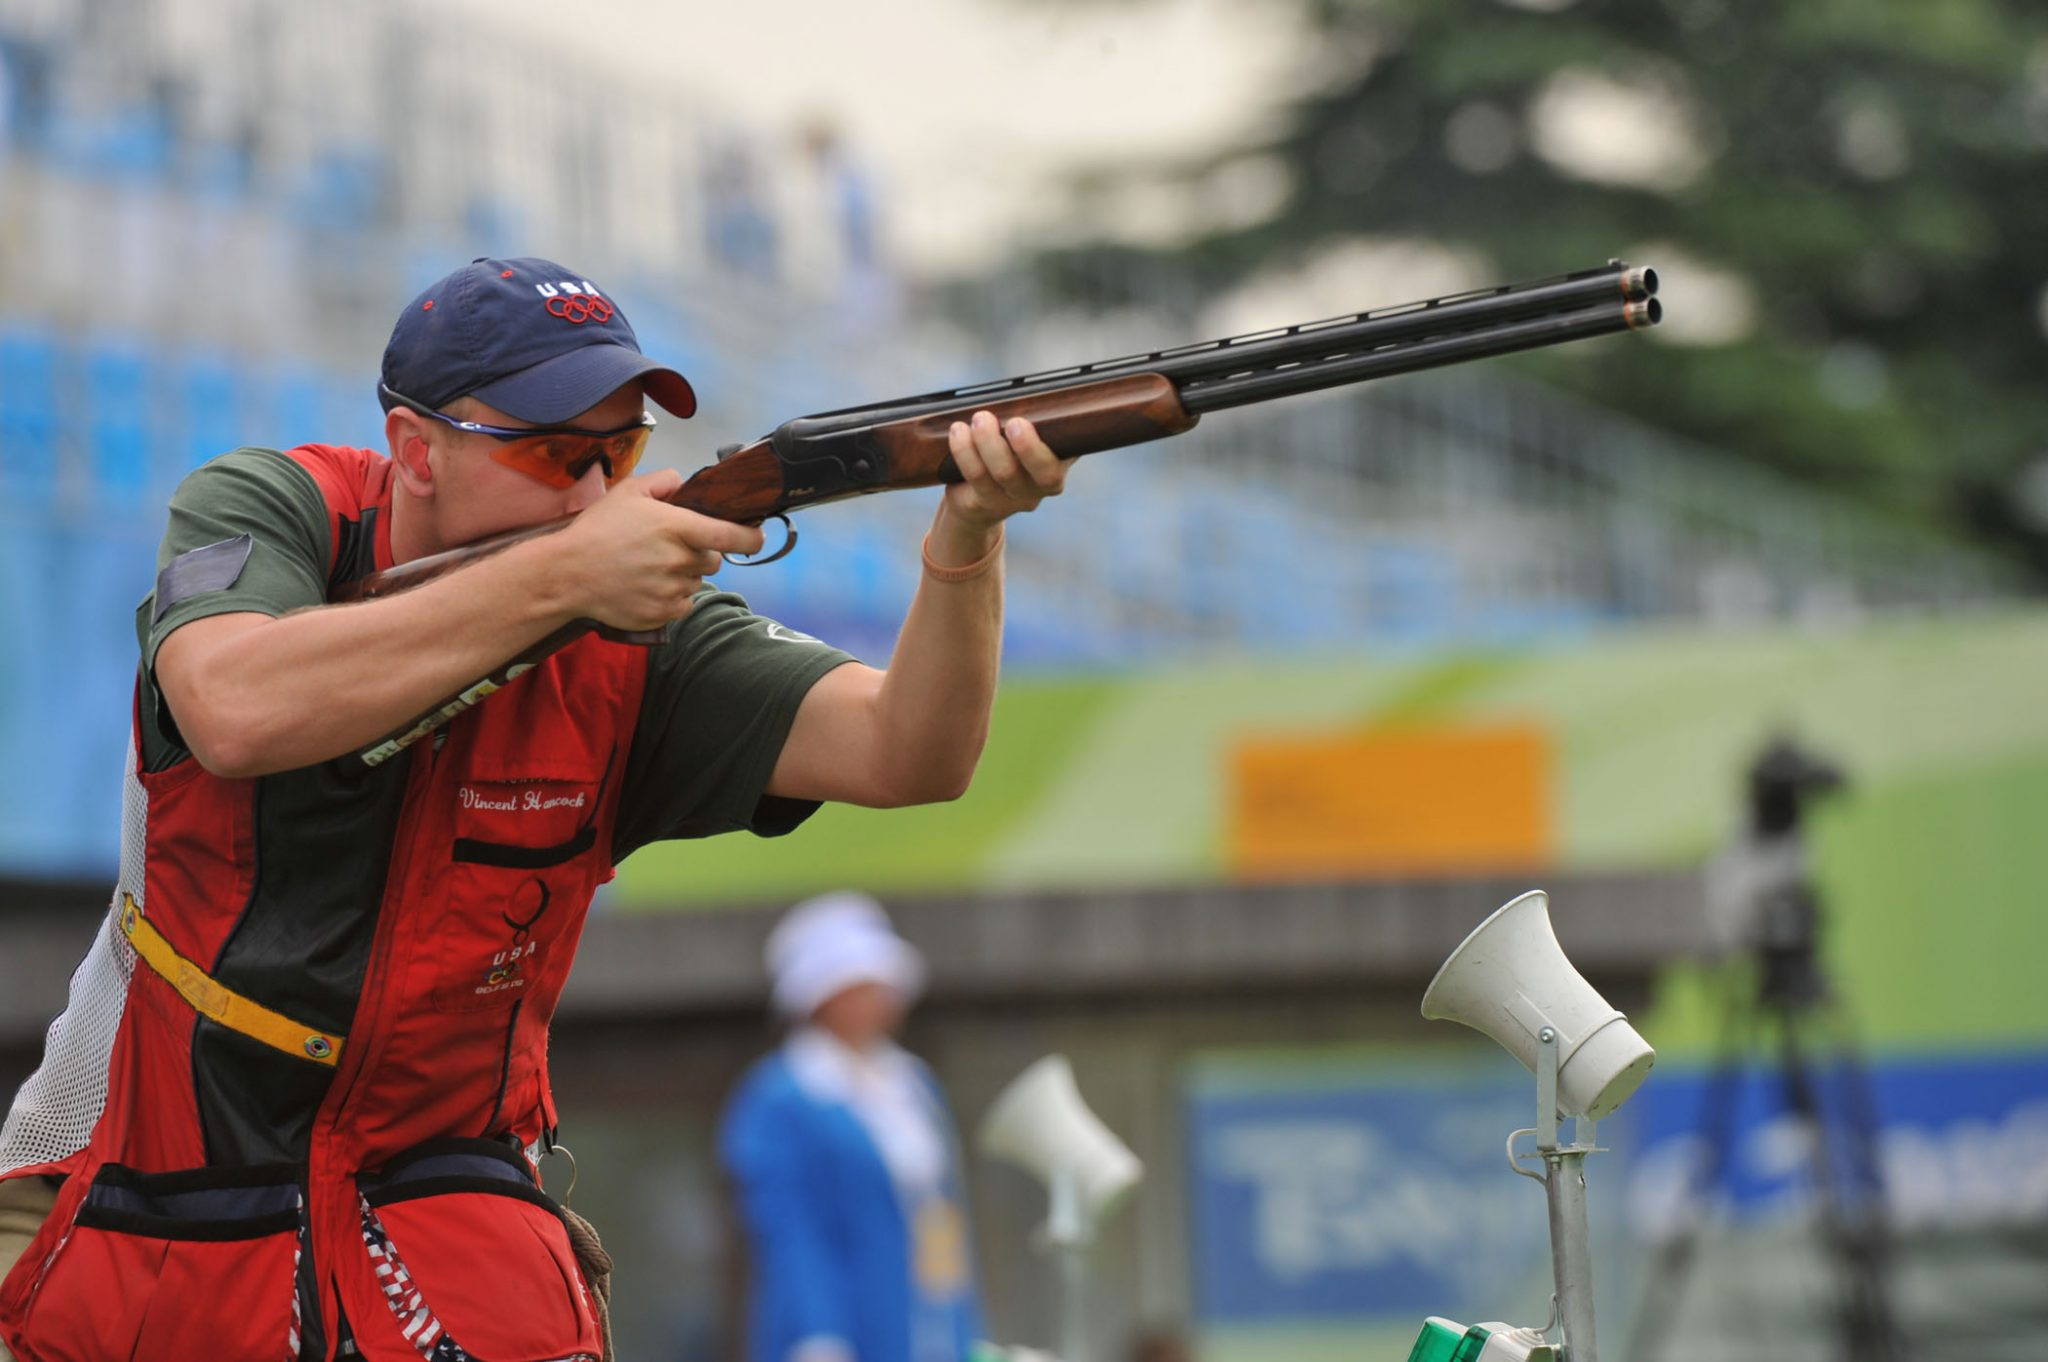 man shoots a sporting rifle in Olympics